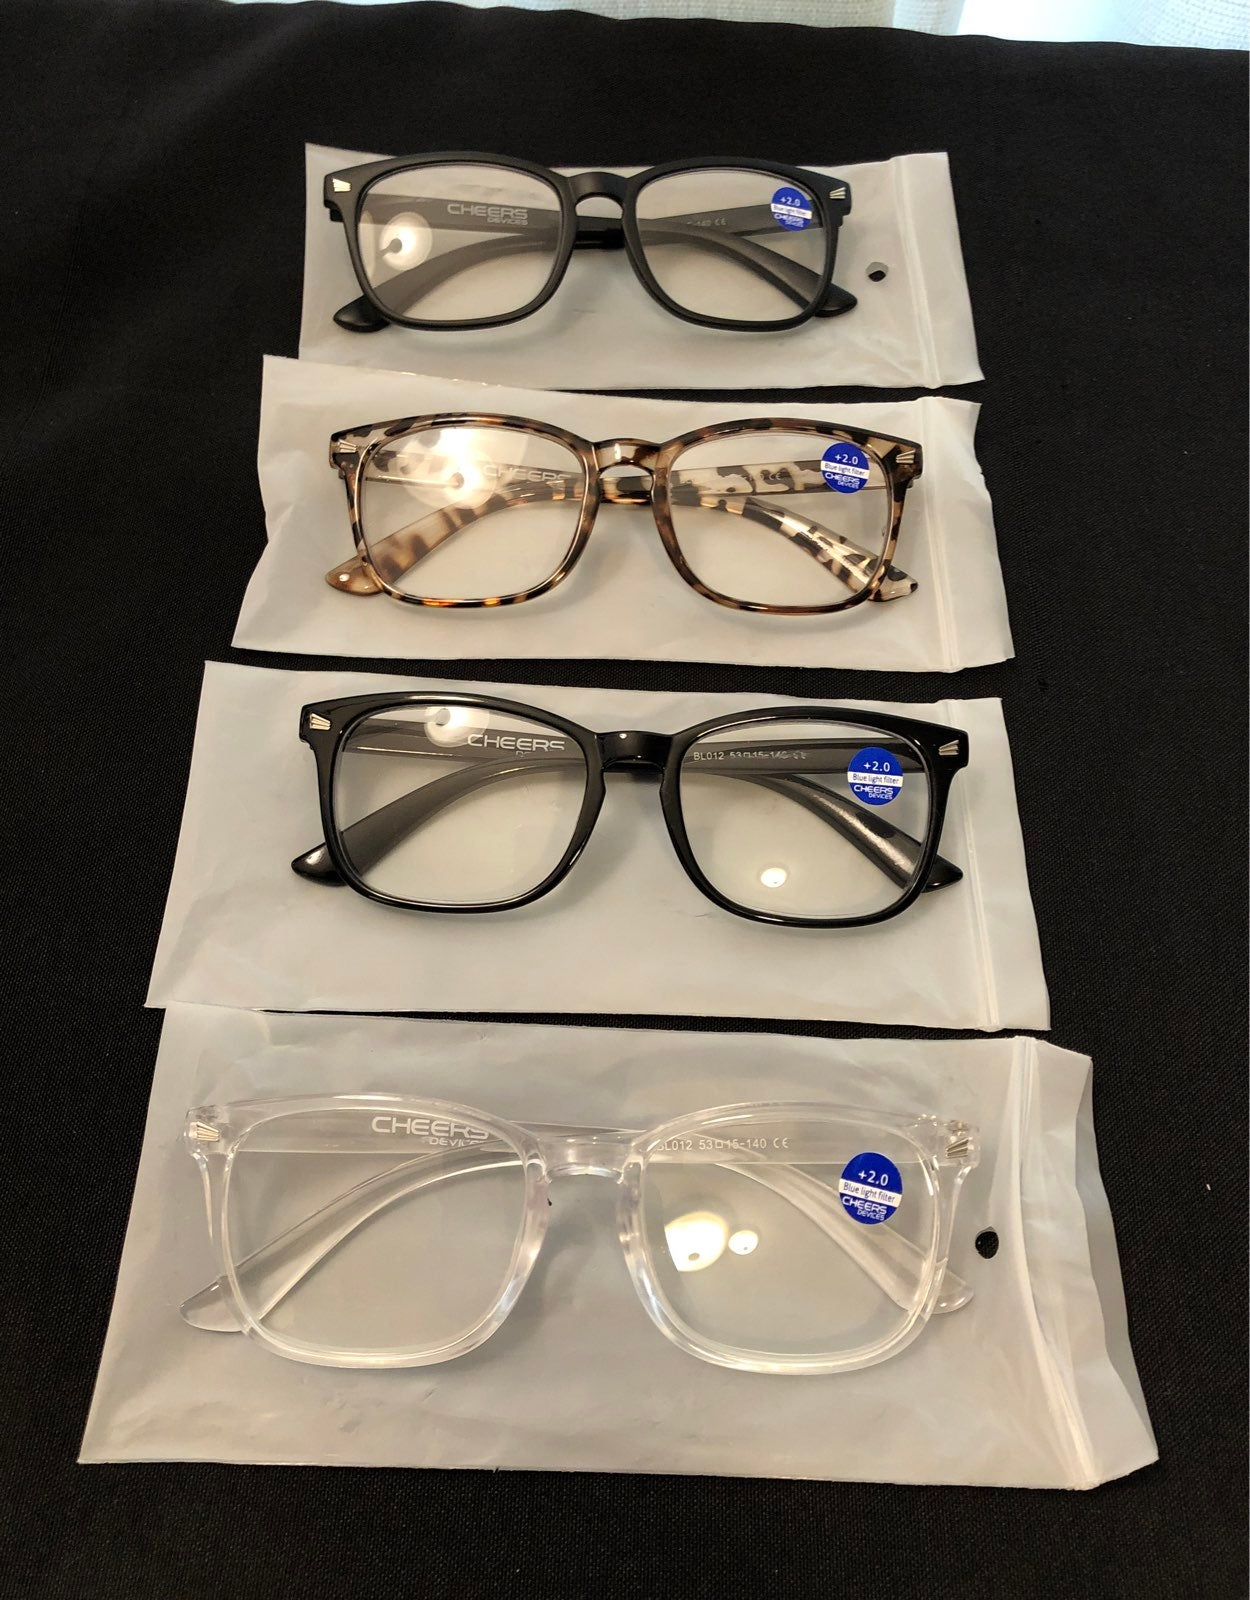 Lot of 4 pair of Cheers Reading Glasses